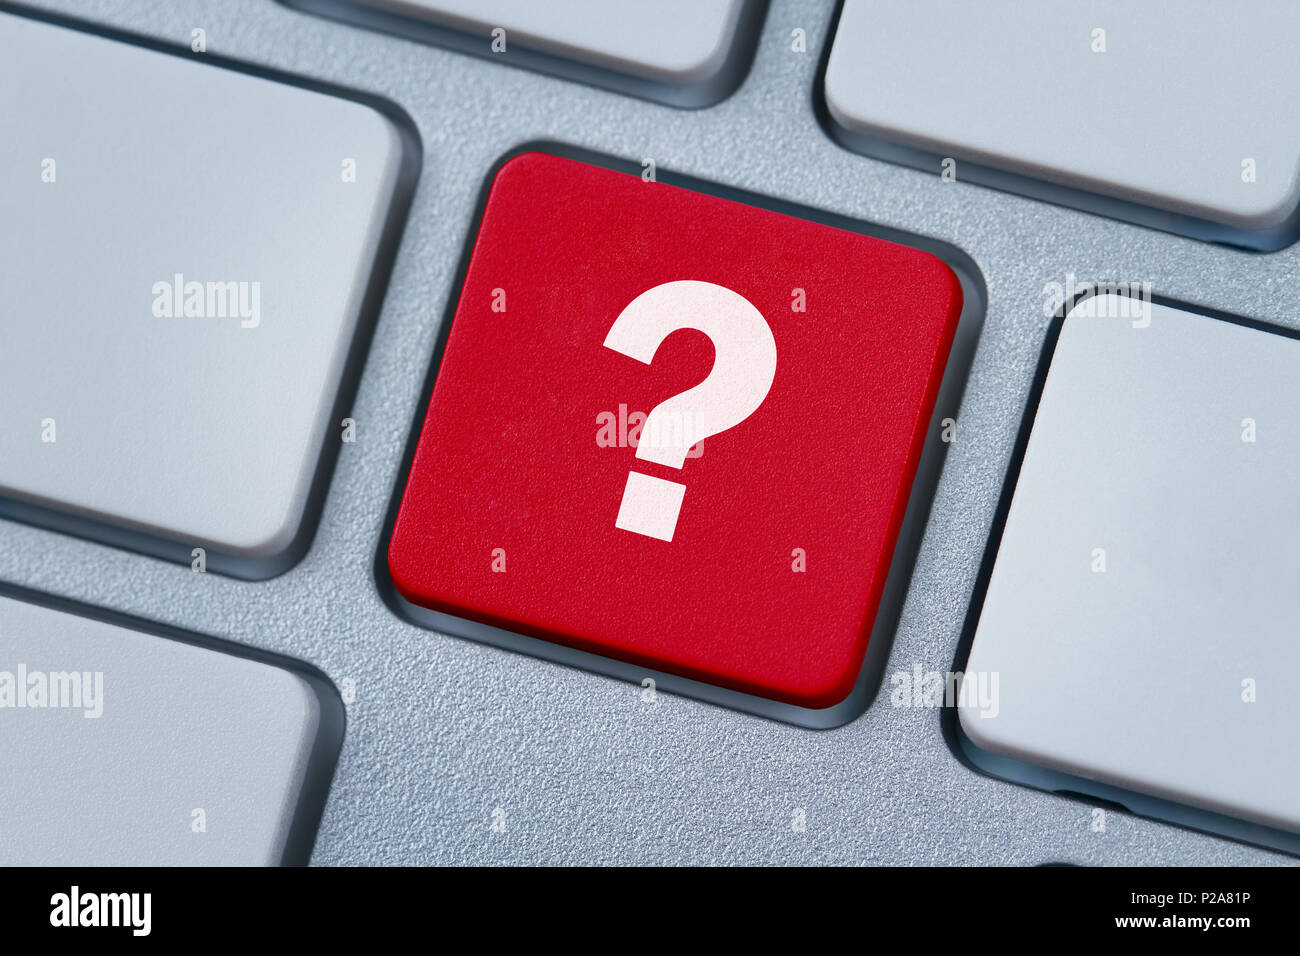 Question mark key, button on the computer keyboard - Stock Image